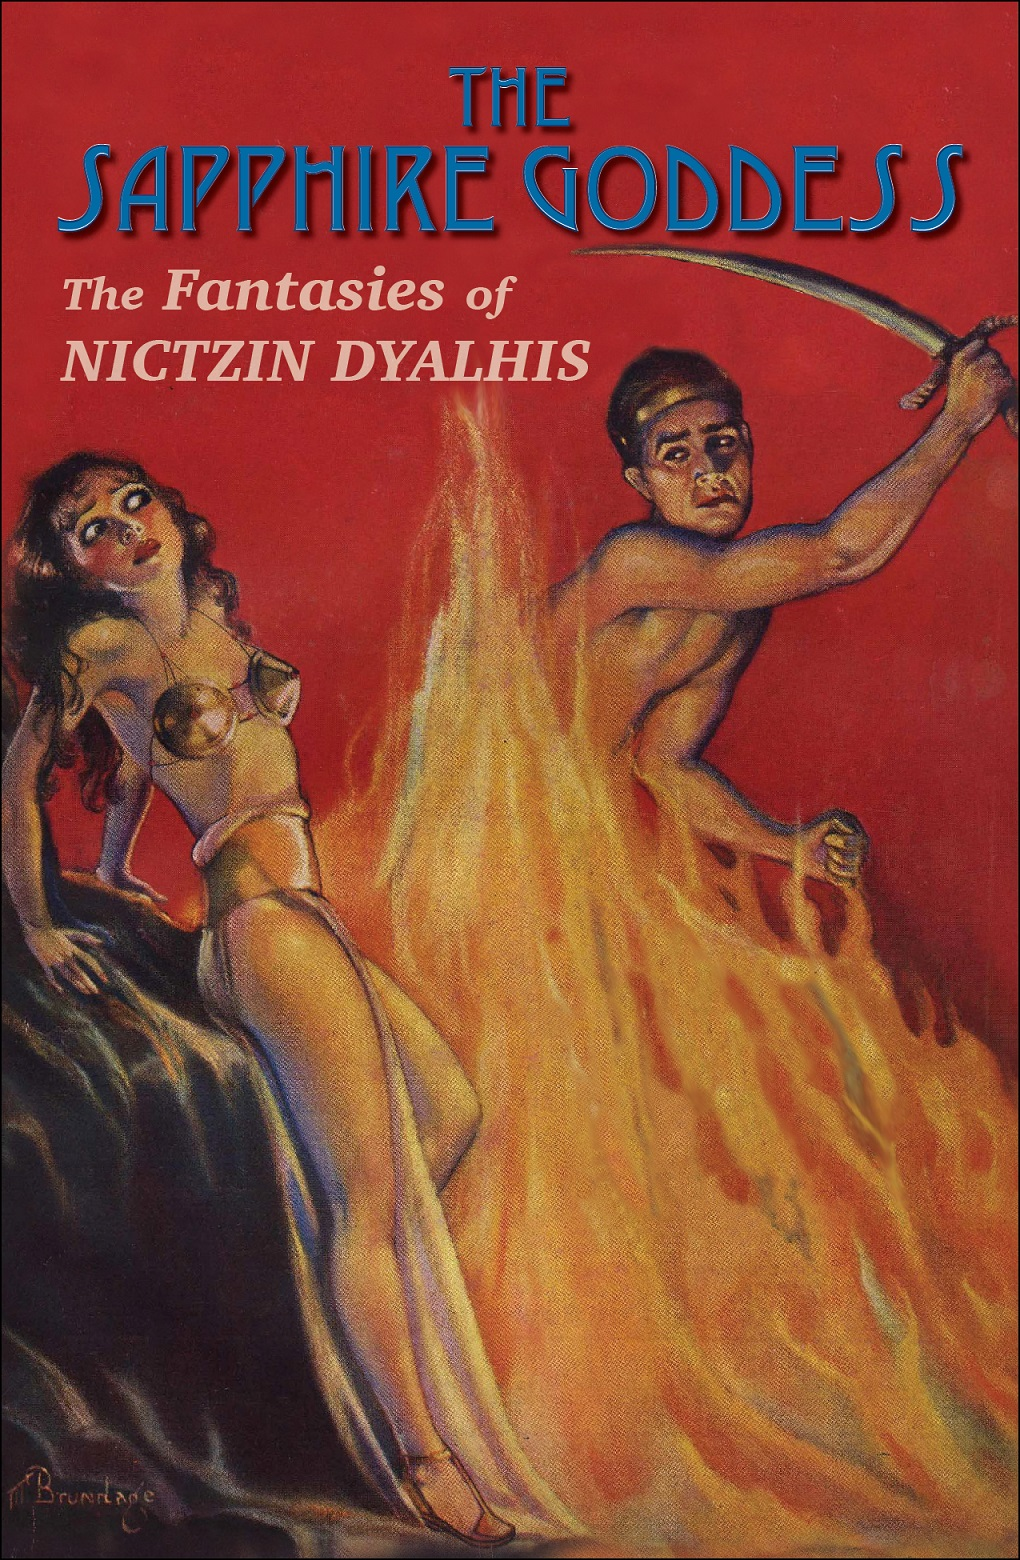 The Sapphire Goddess - The Fantasies of Nictzin Dyalhis - At last, the stories of one of the most unusual writers of weird fiction are collected! This volume contains all of Nictzin Dyalhis' works of fantasy and science fiction, many of which have never before been reprinted. Those who love the wild imagination and masterful prose of authors such as Clark Ashton Smith and C.L. Moore are sure to enjoy this collection.Contents:When the Green Star WanedThe Eternal ConflictHe Refused to Stay DeadThe Dark LoreThe Oath of Hul JokThe Red WitchThe Sapphire GoddessThe Sea-WitchHeart of AtlantanClassic Size: 6.5